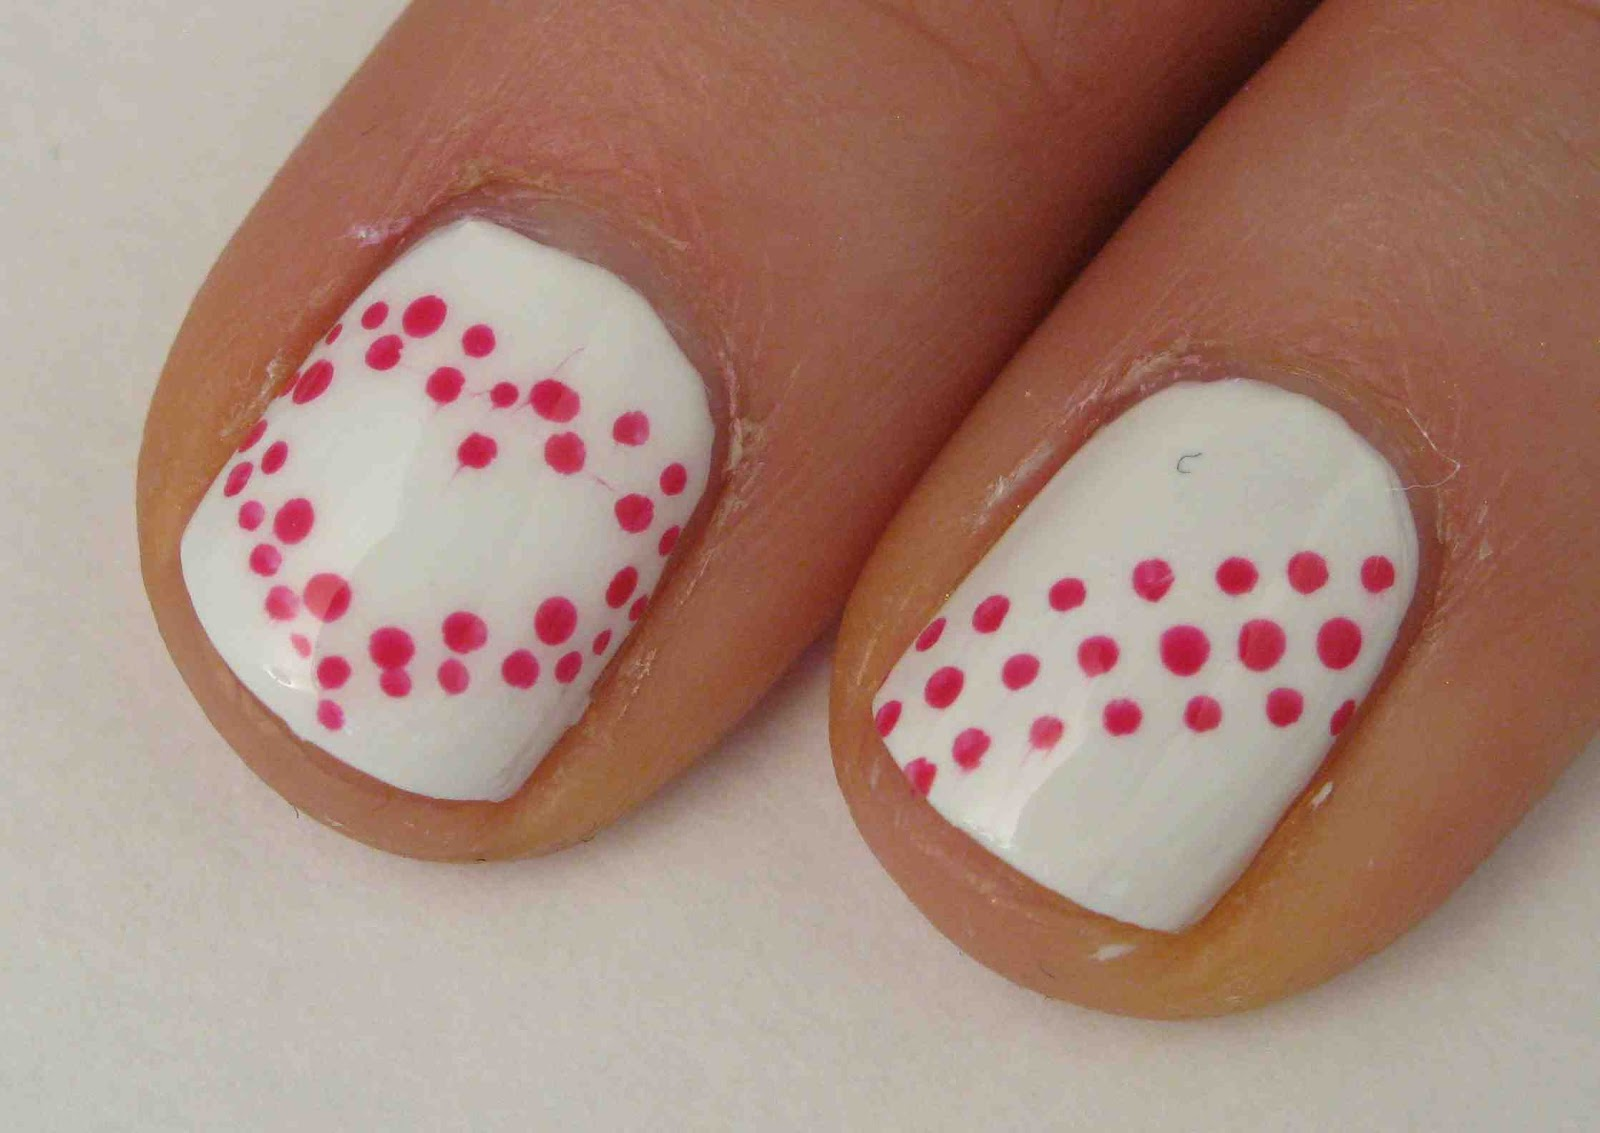 ... day nail designs idea 2014- How to Decorate nails with Hearts